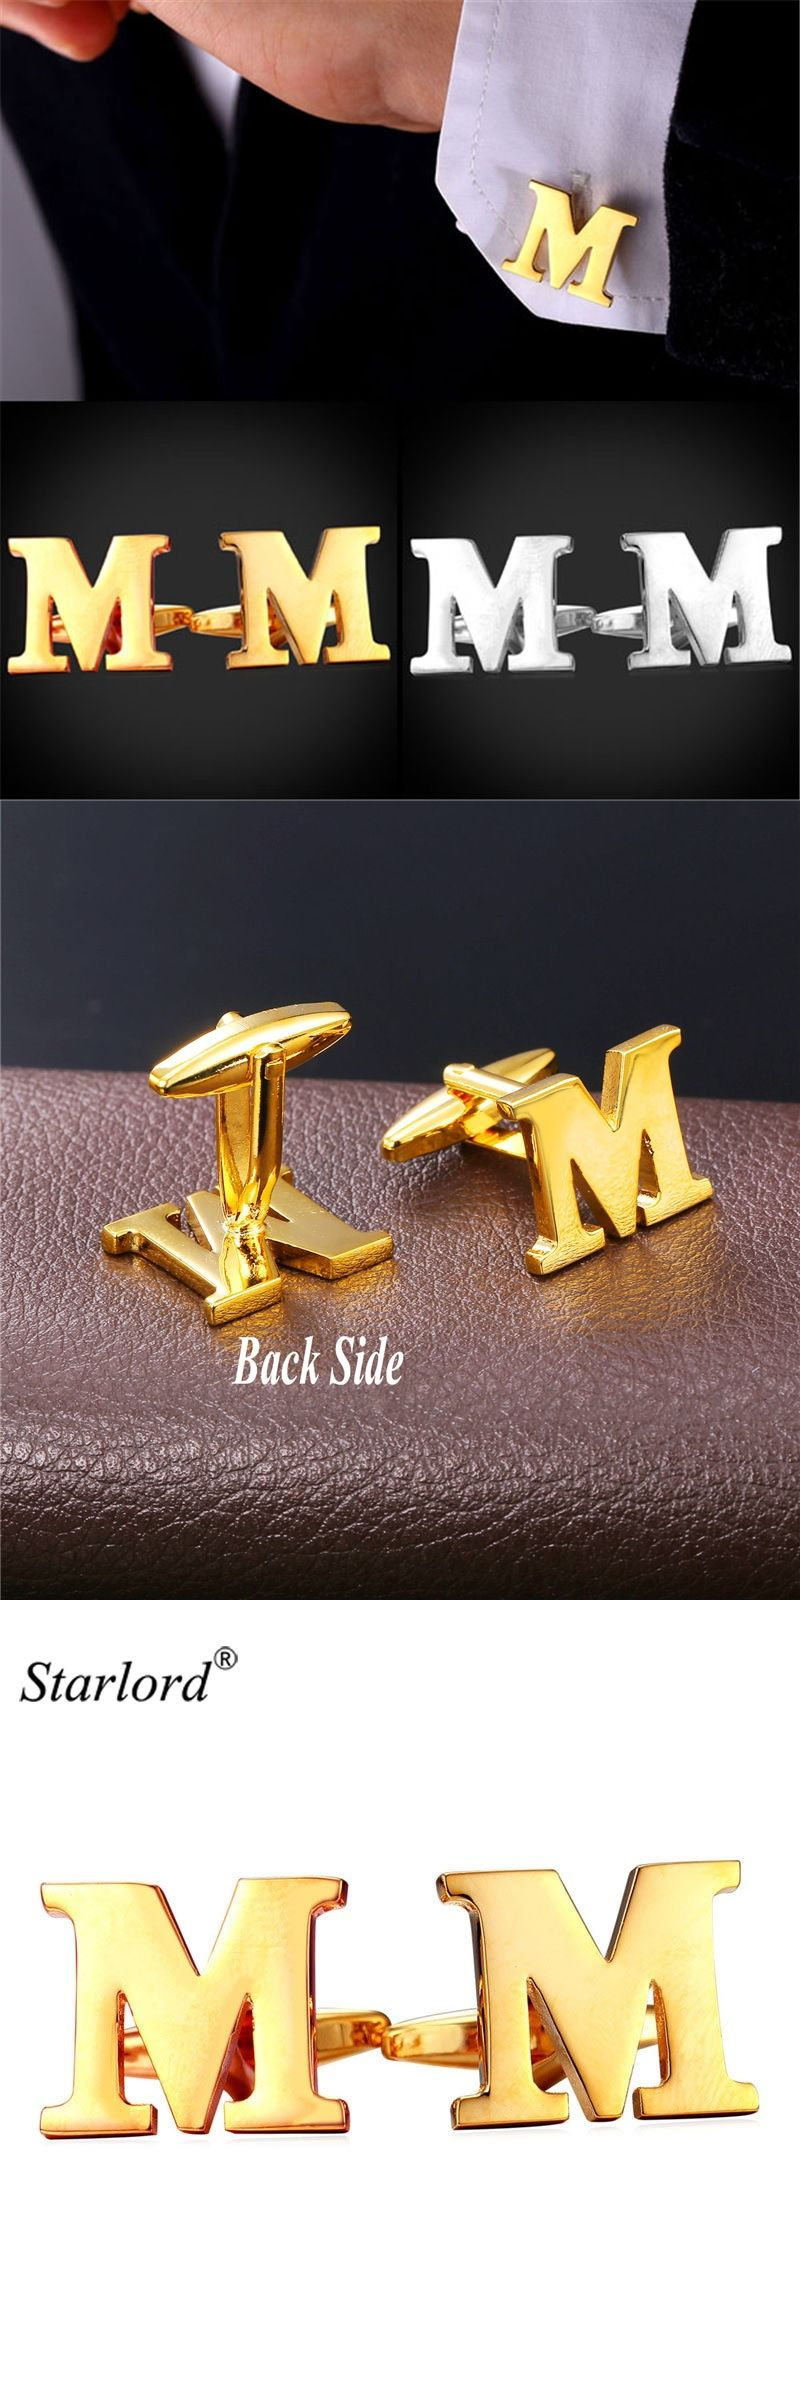 miraculous with ban doublebridge ray iridium summer and charm main mm rayban pin p sunglasses x non nonpolarized square baby best filled ensure gold badge boots quality